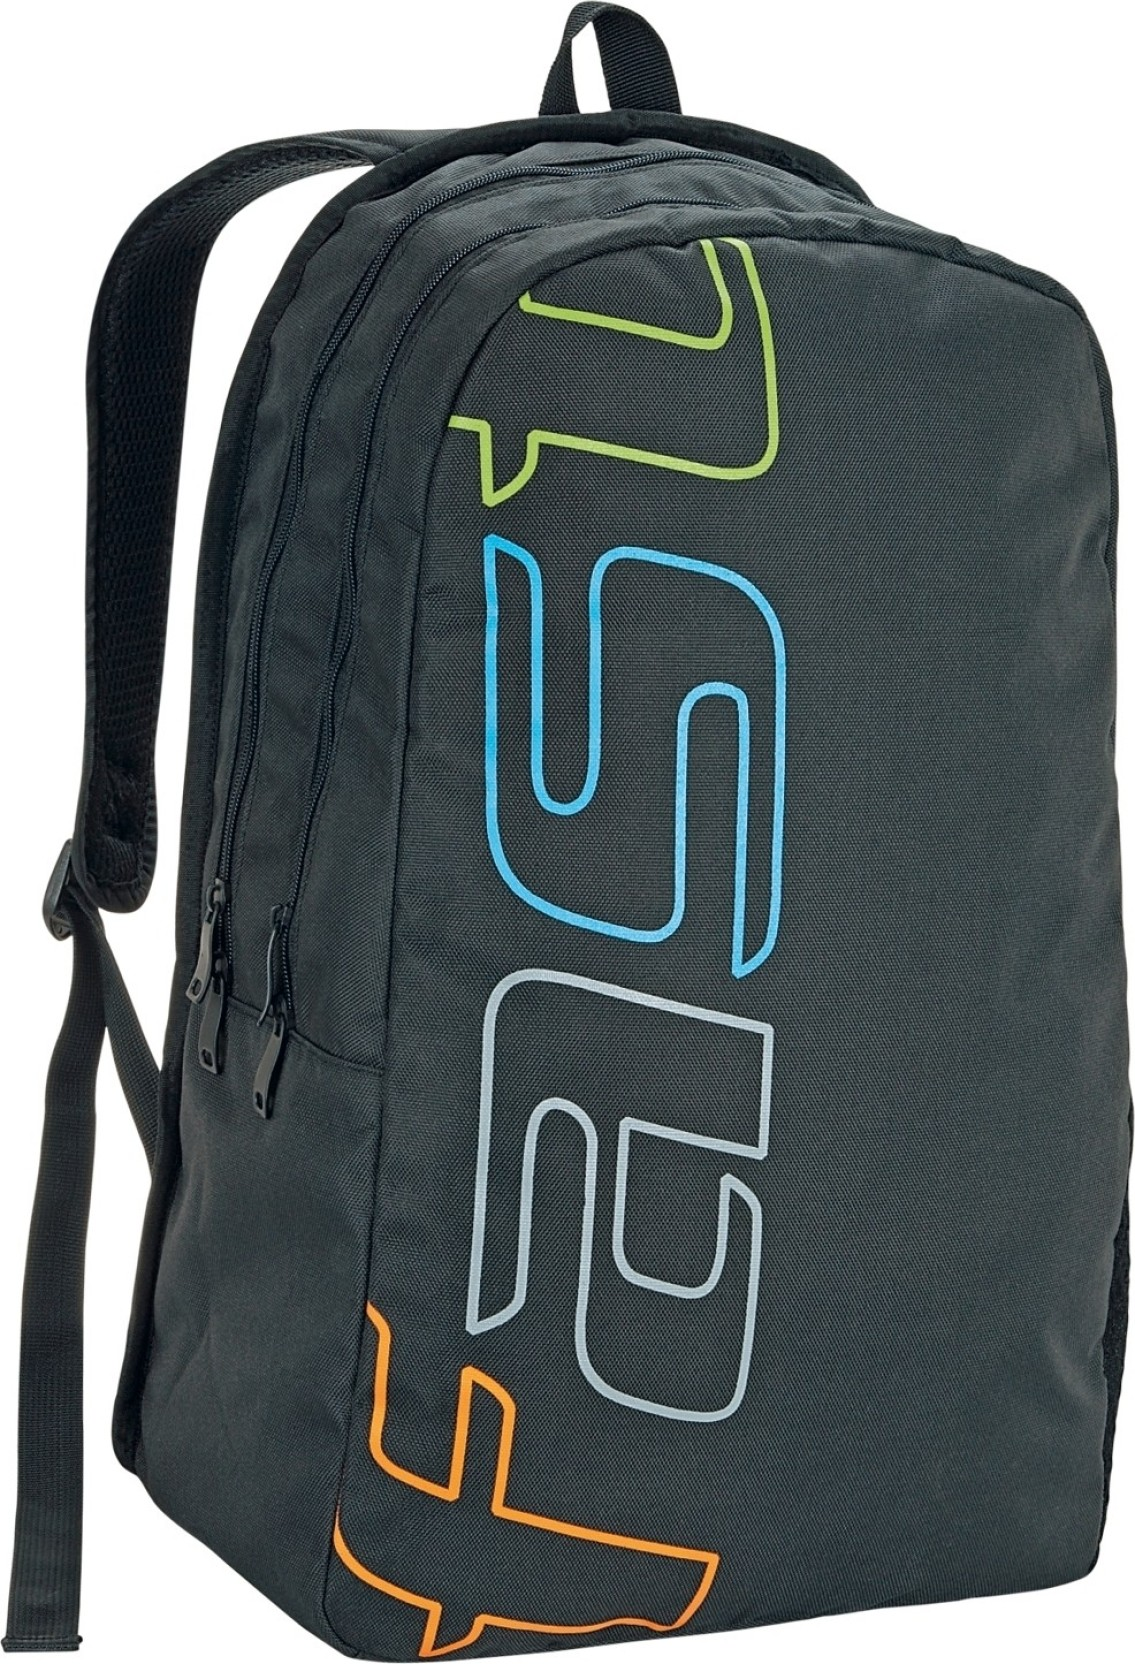 Fastrack 27 L Backpack Black - Price in India | Flipkart.com